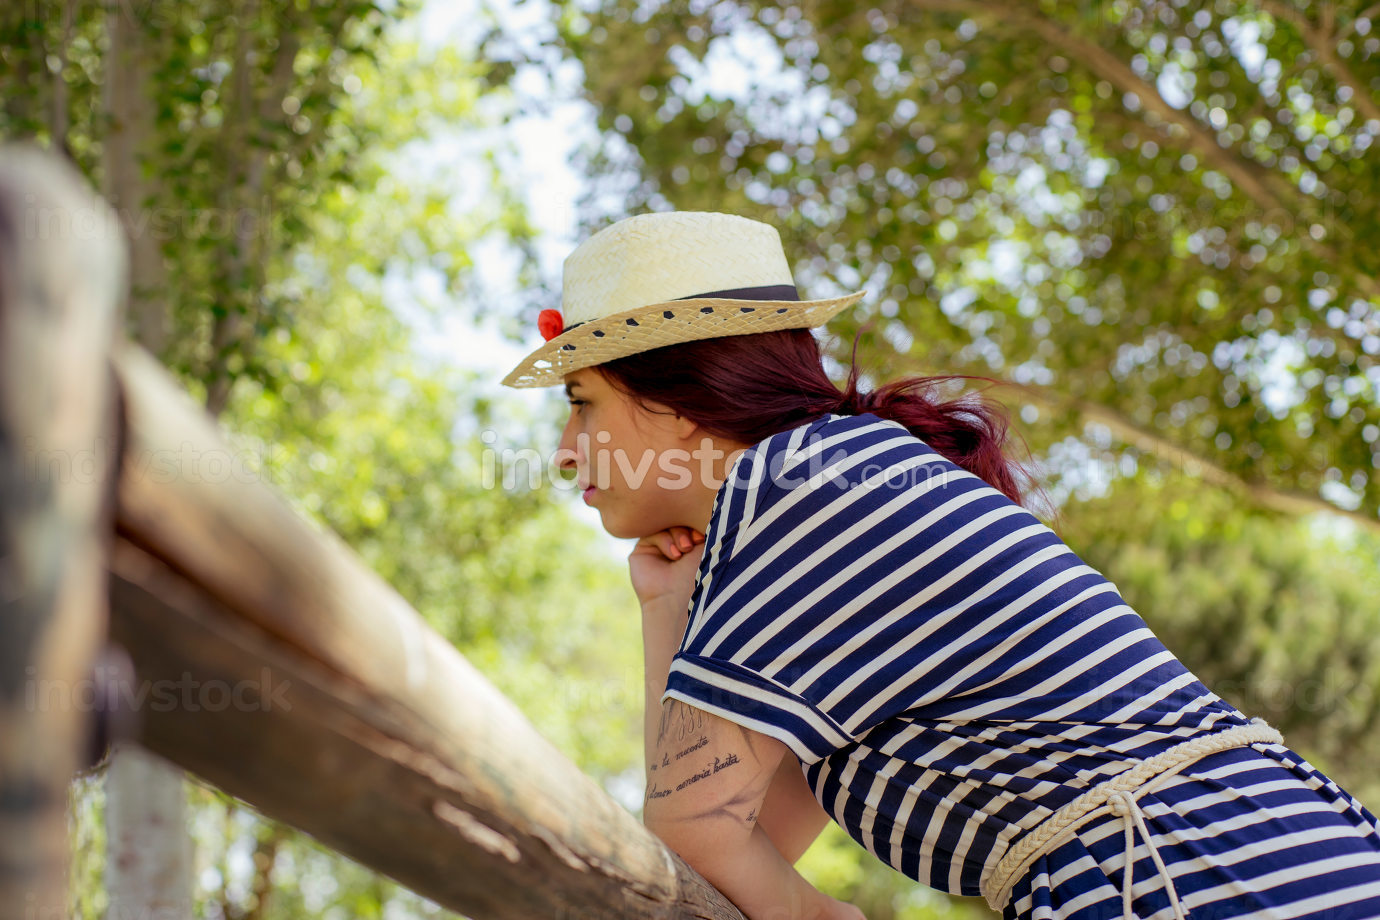 sunny spring scene, red haired girl with straw hat enjoying the